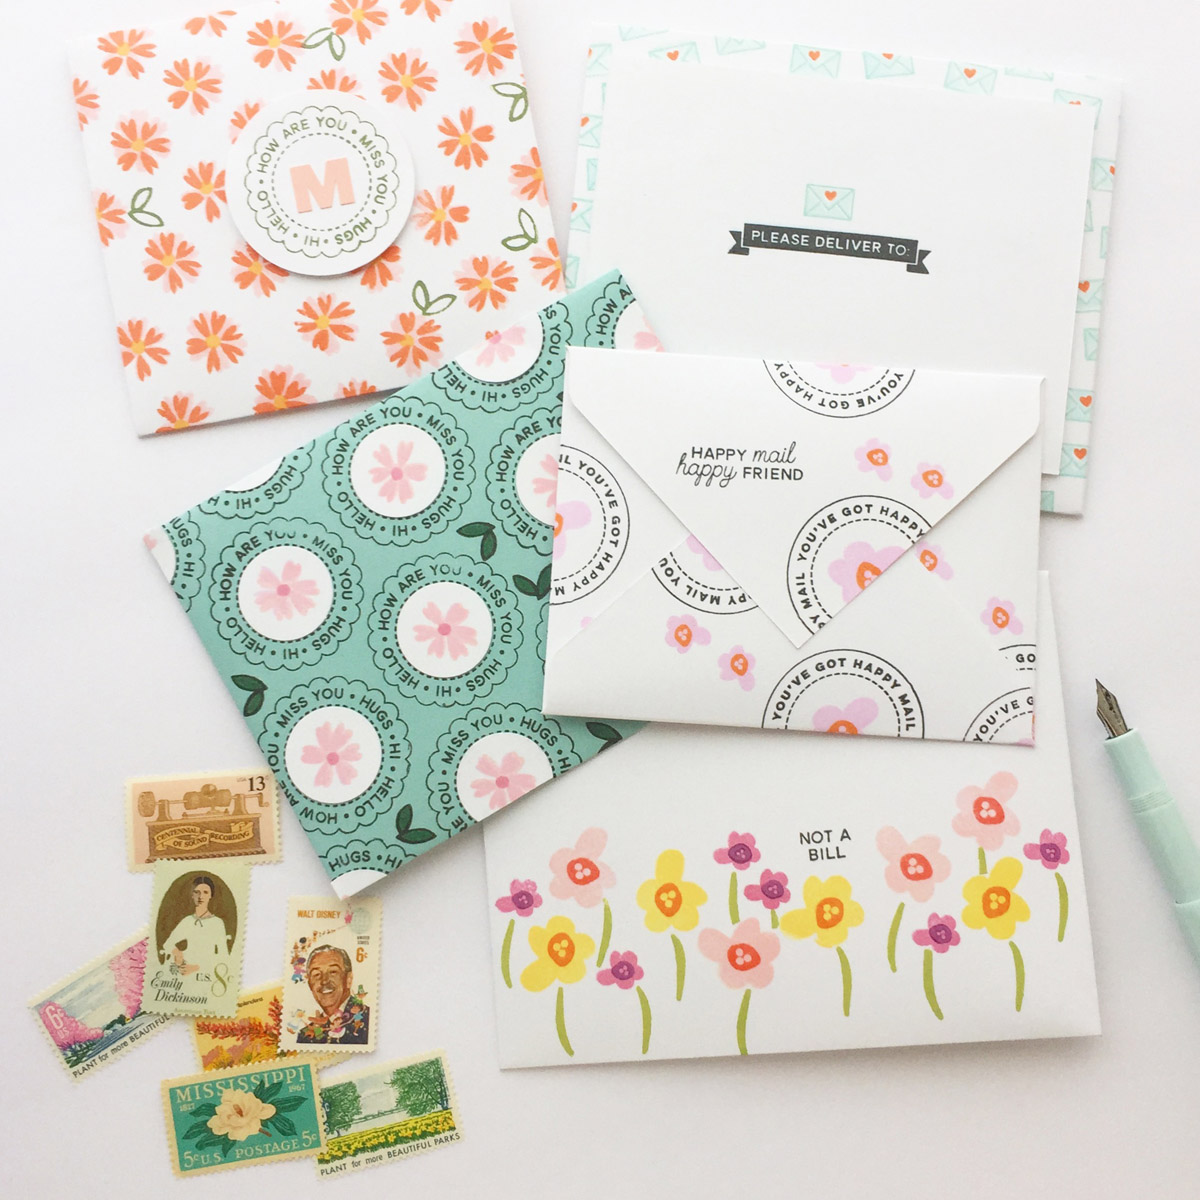 Hand-Stamped Happy Mail Envelopes by Brandi Kincaid // rightathomeshop.com/blog